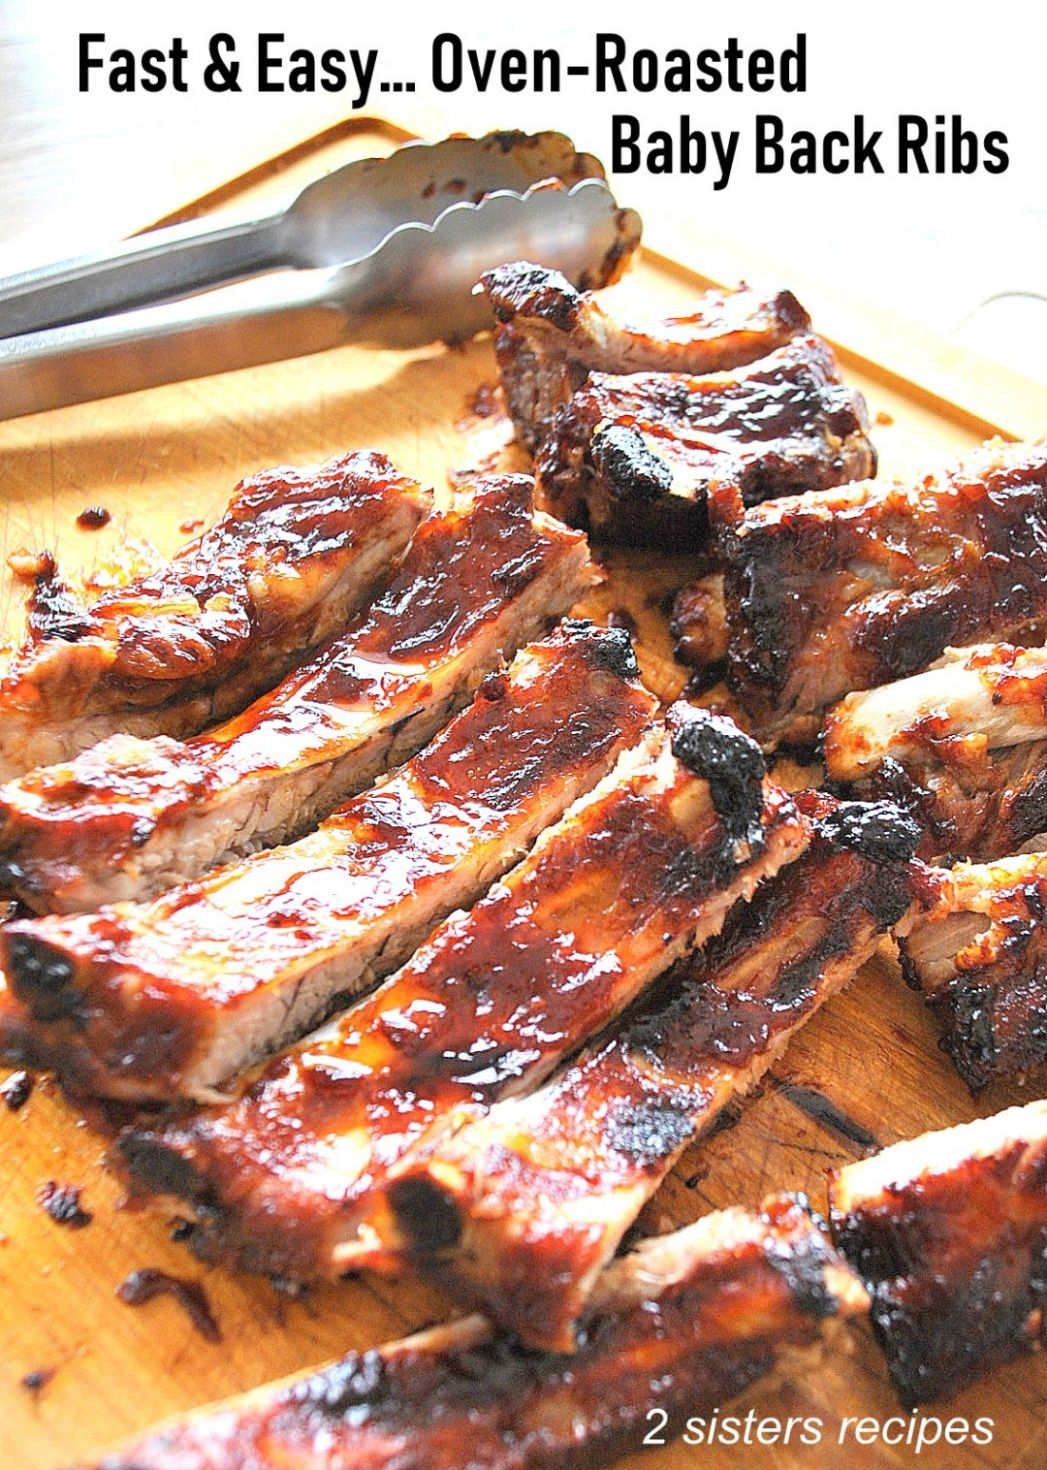 Fast & Easy Oven Roasted Baby Back Ribs - 12 Sisters Recipes by ..